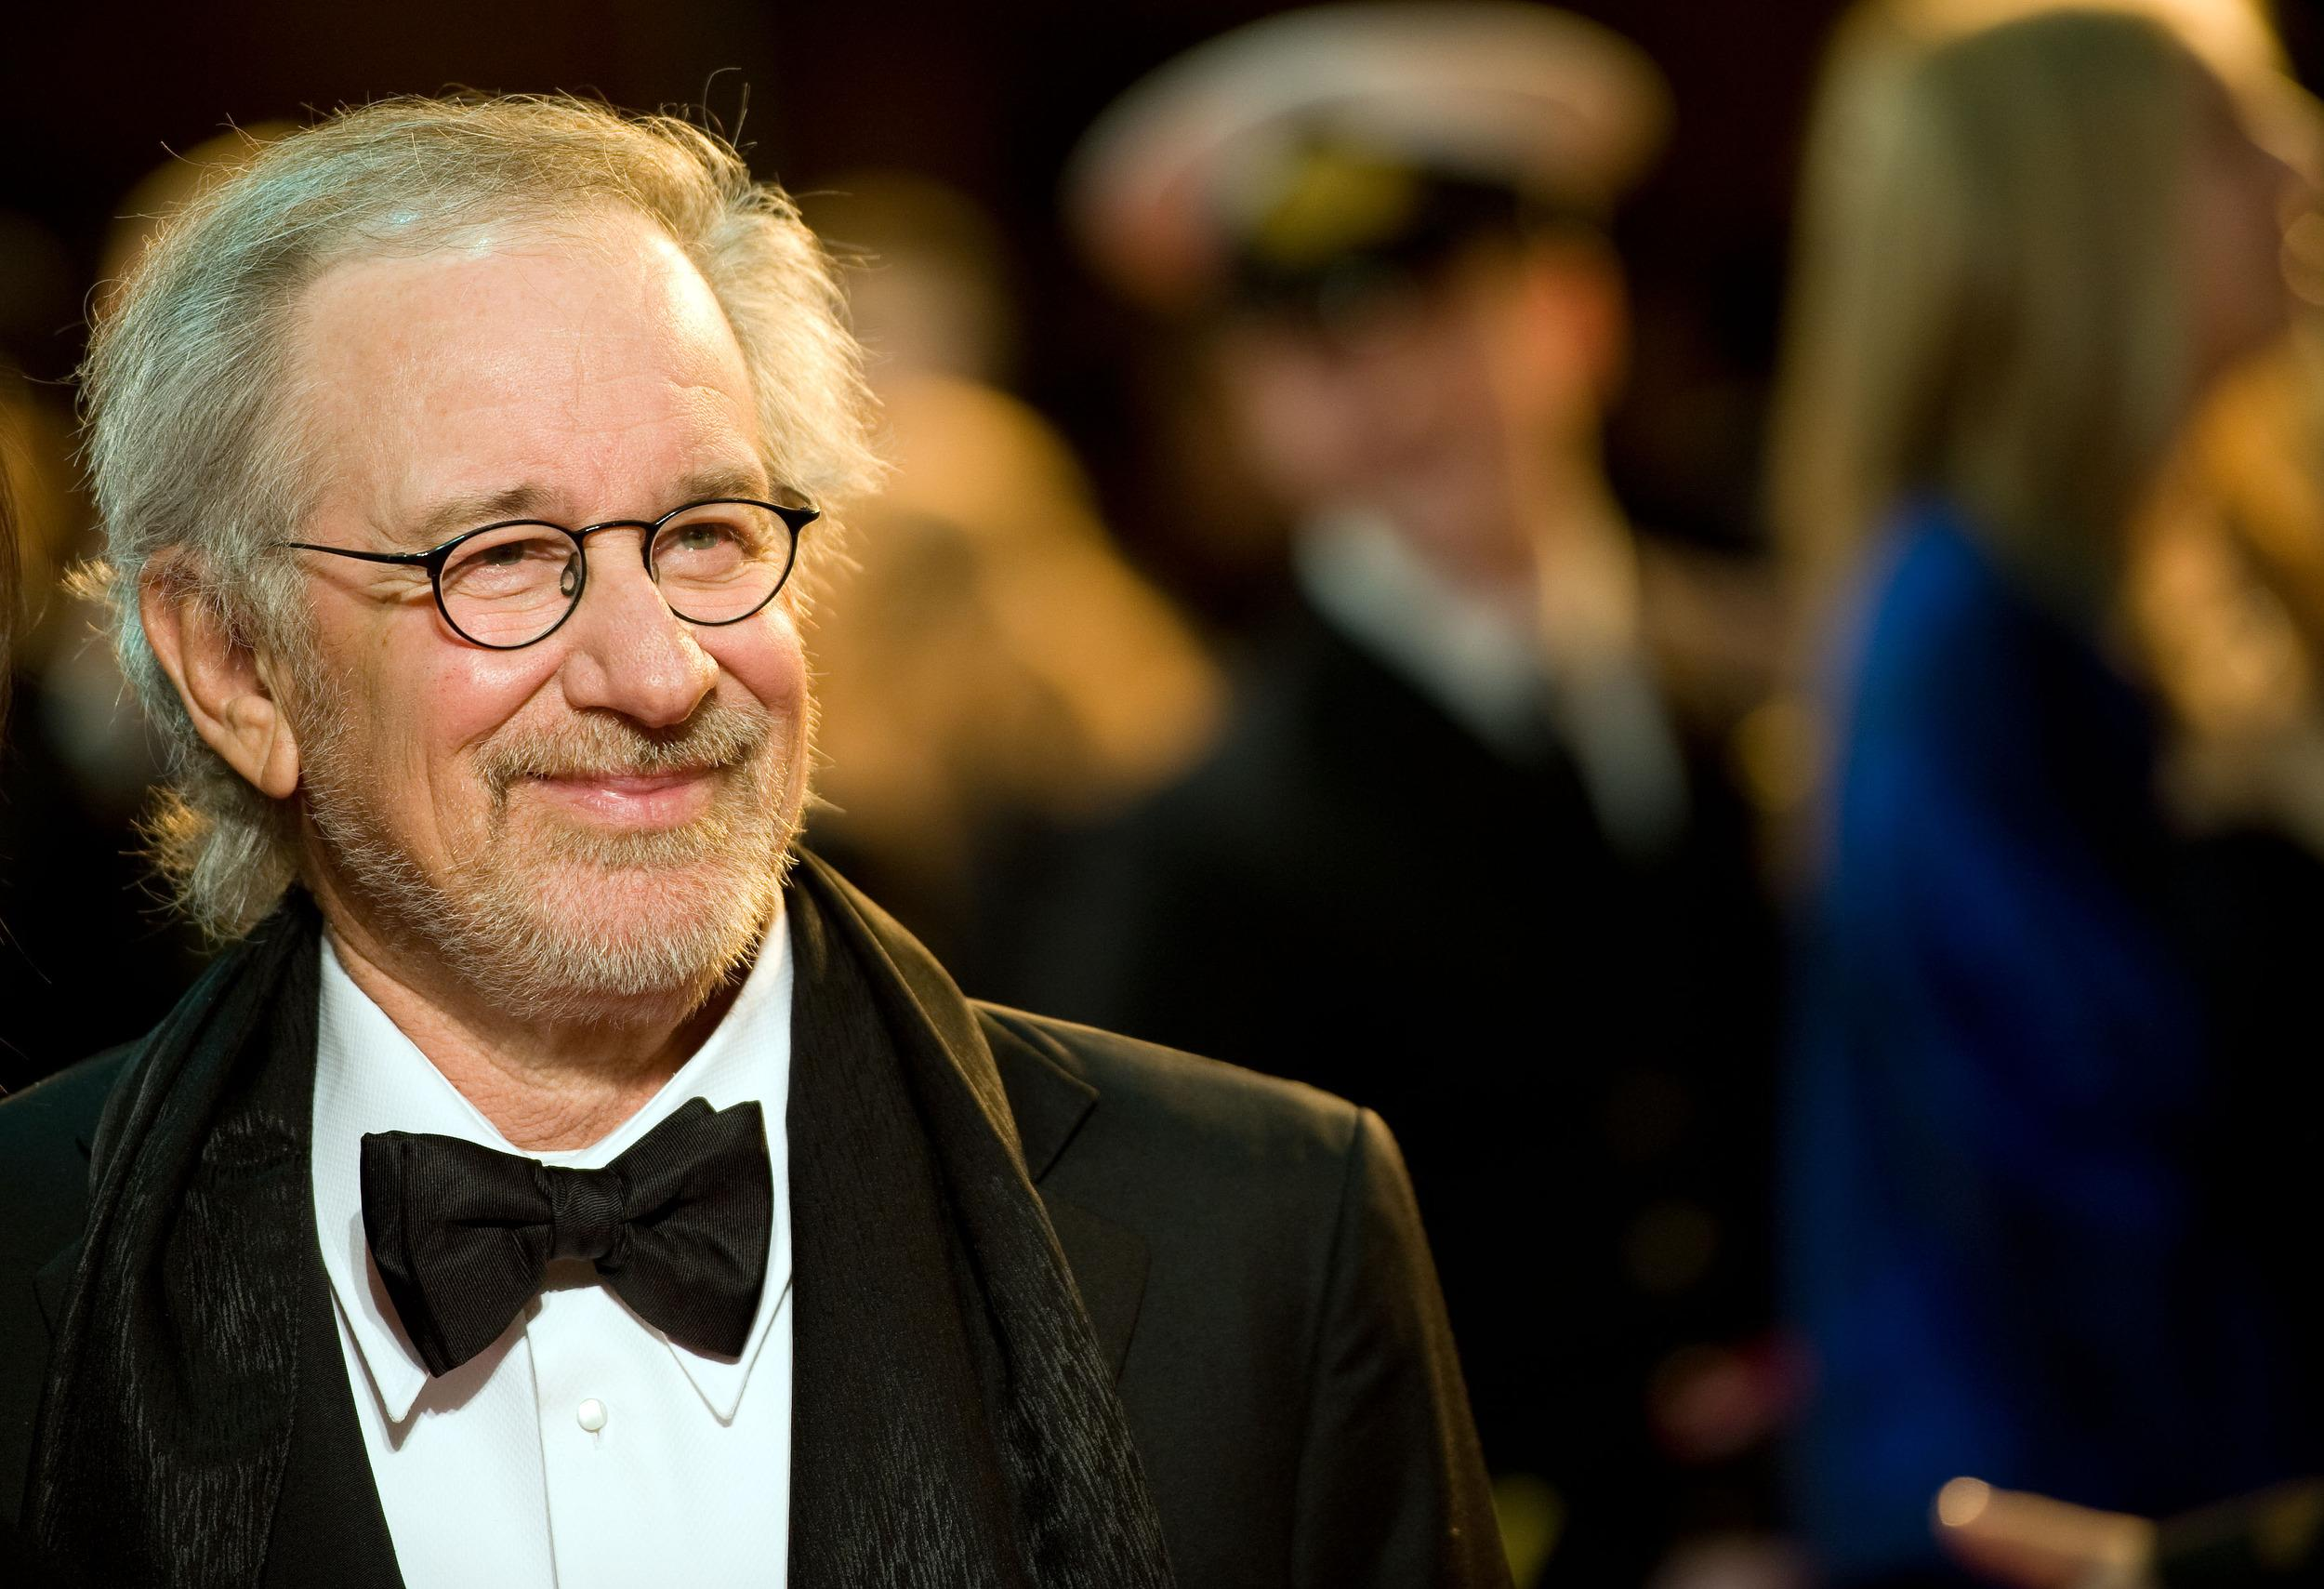 The veteran director had a hit with Lincoln last year, but the bulk of his $100 earnings comes from royalties from his earlier works. It can't hurt to have the Raiders of the Lost Ark franchise and the Jurassic Park films quietly making money for you. He also makes a slice from the Universal Studios theme parks. The combination means he's up a place in the rankings from last year.